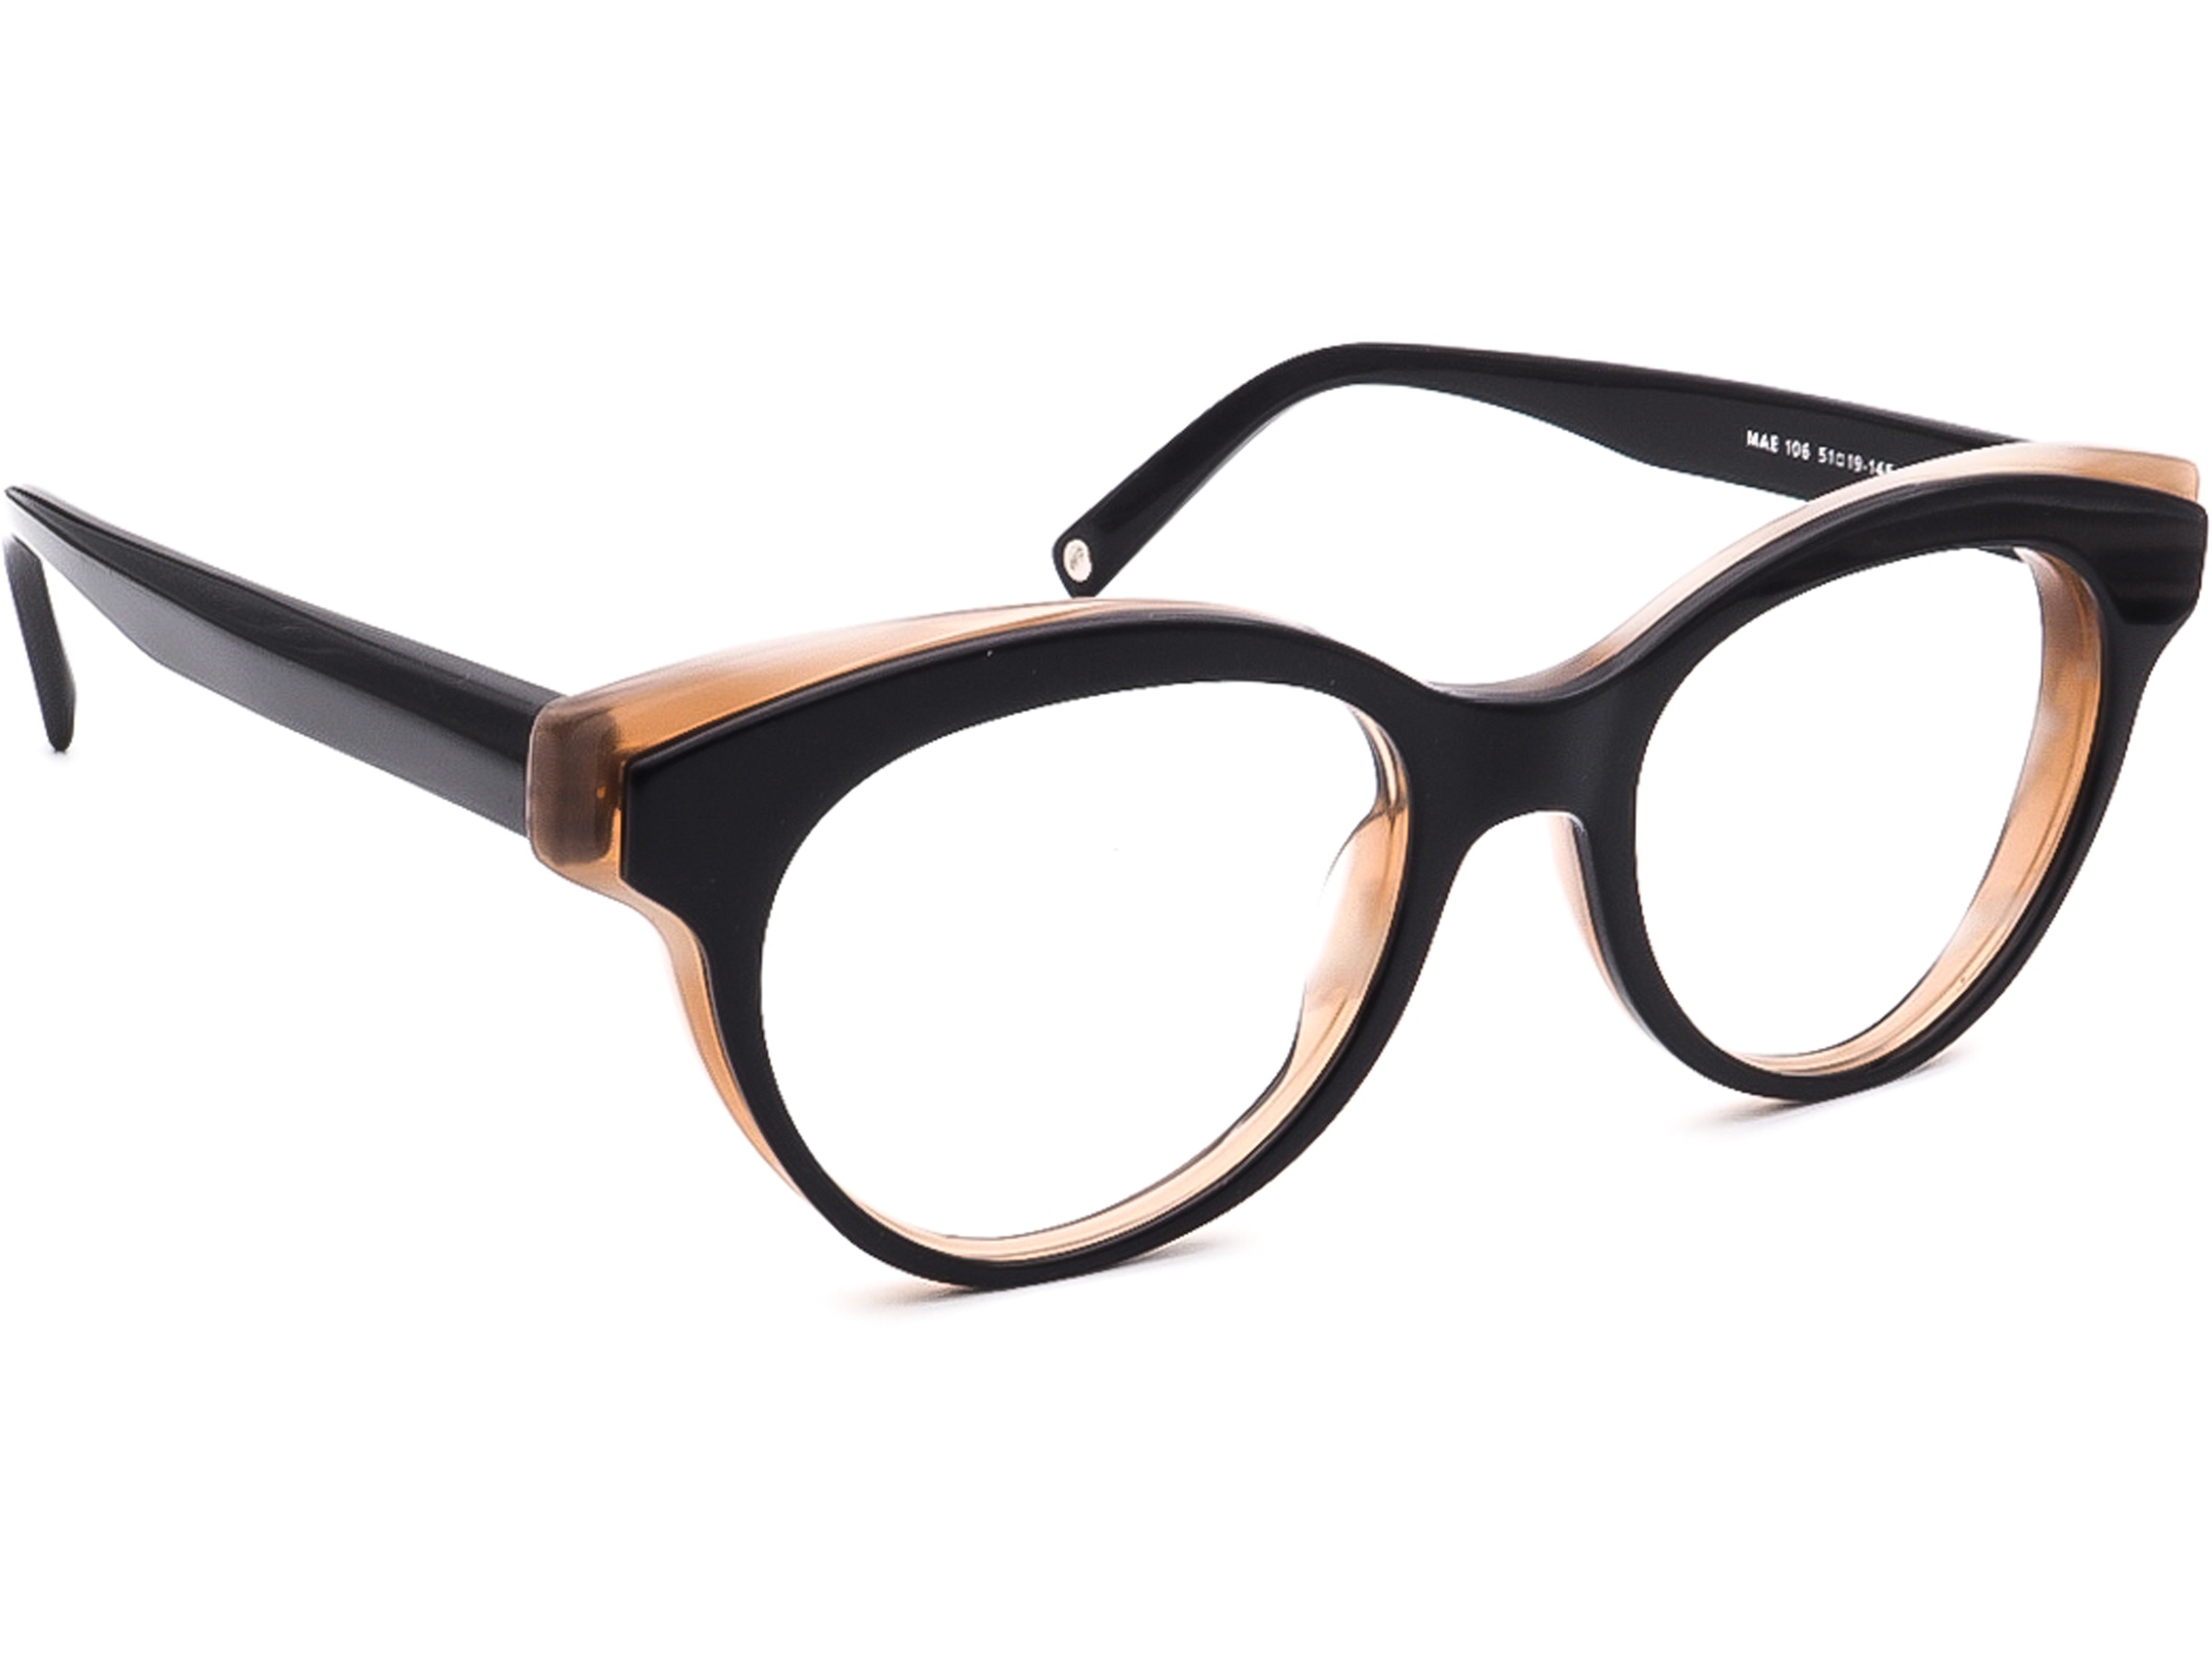 Warby Parker Mae 106 Sunglasses Frame Only